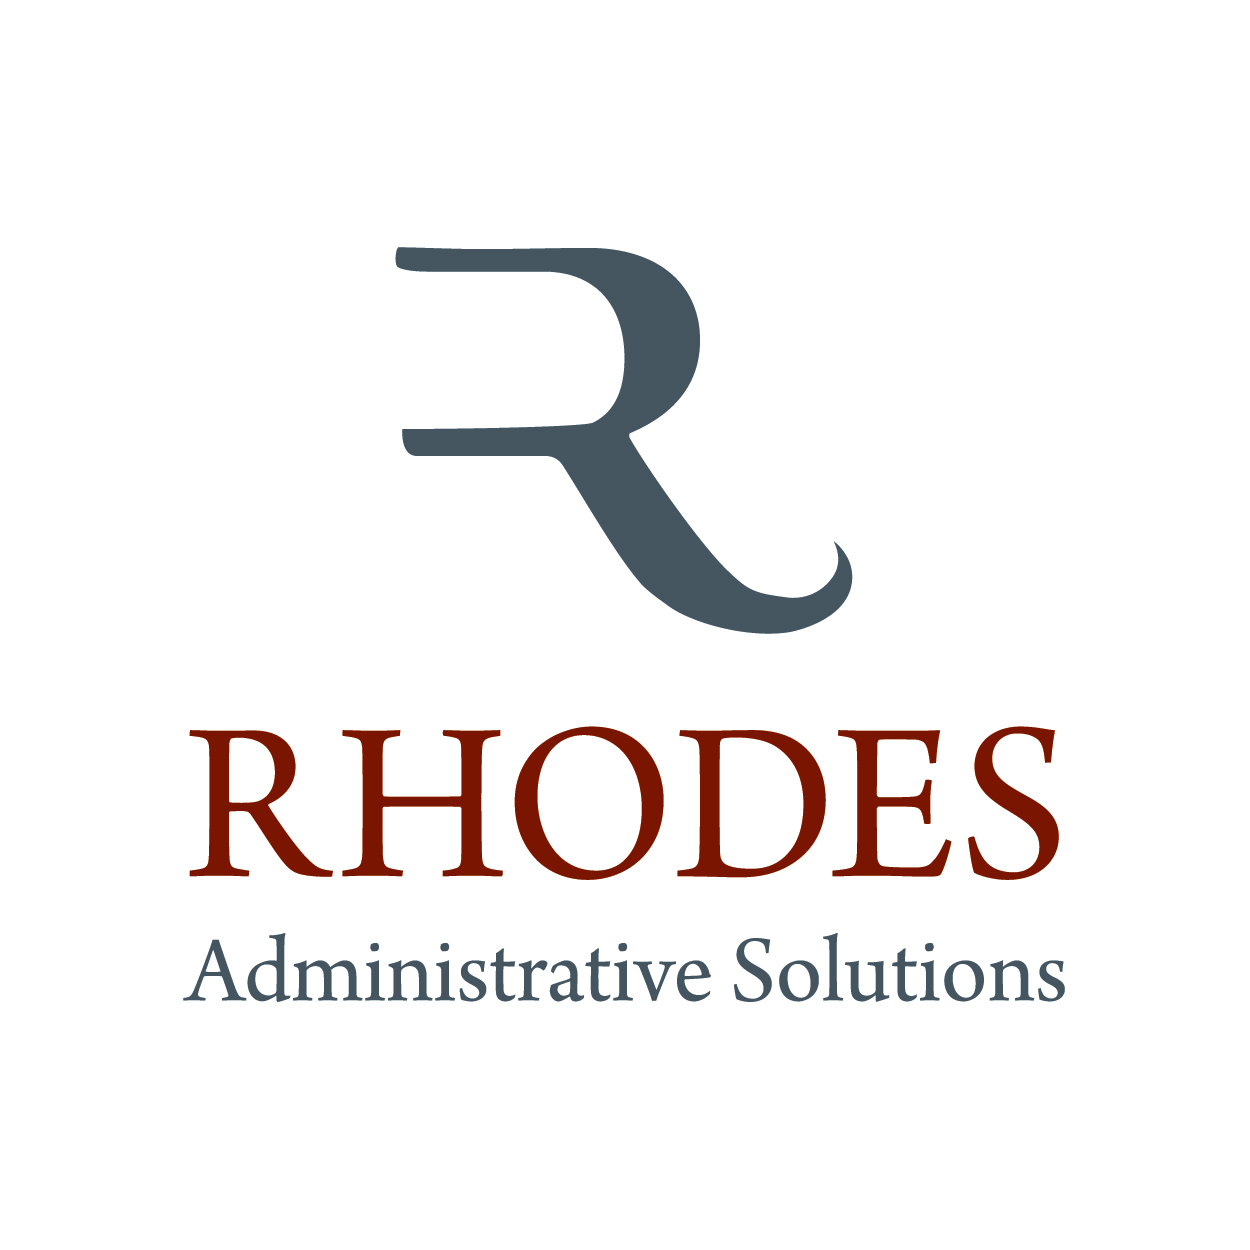 Logo Design by Josephope Sardalla - Entry No. 126 in the Logo Design Contest Rhodes Administrative Solutions.